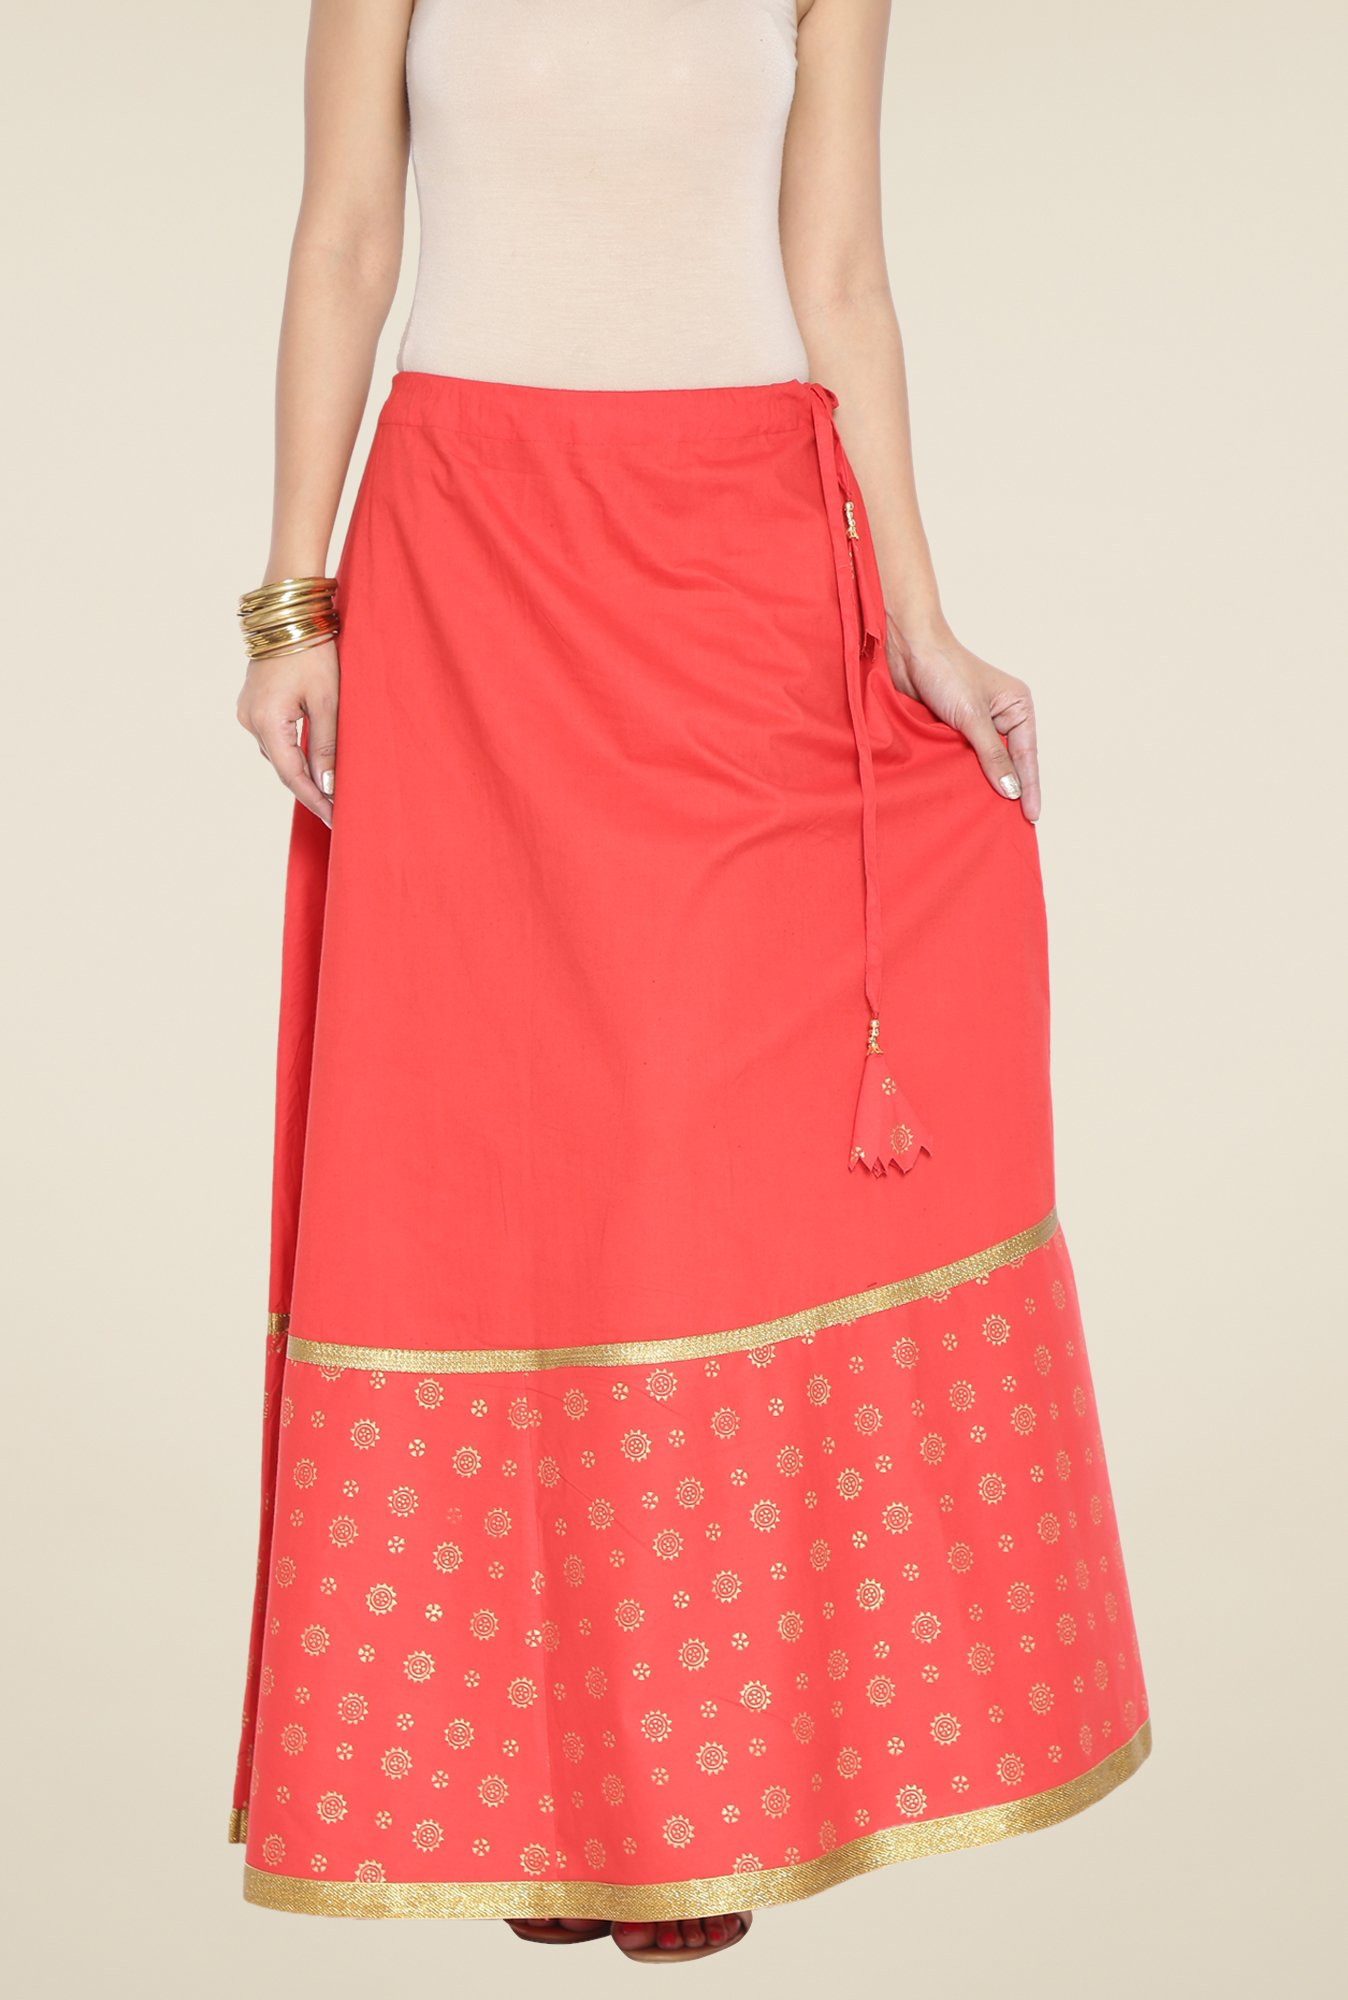 9rasa Red Block Print Flared Skirt